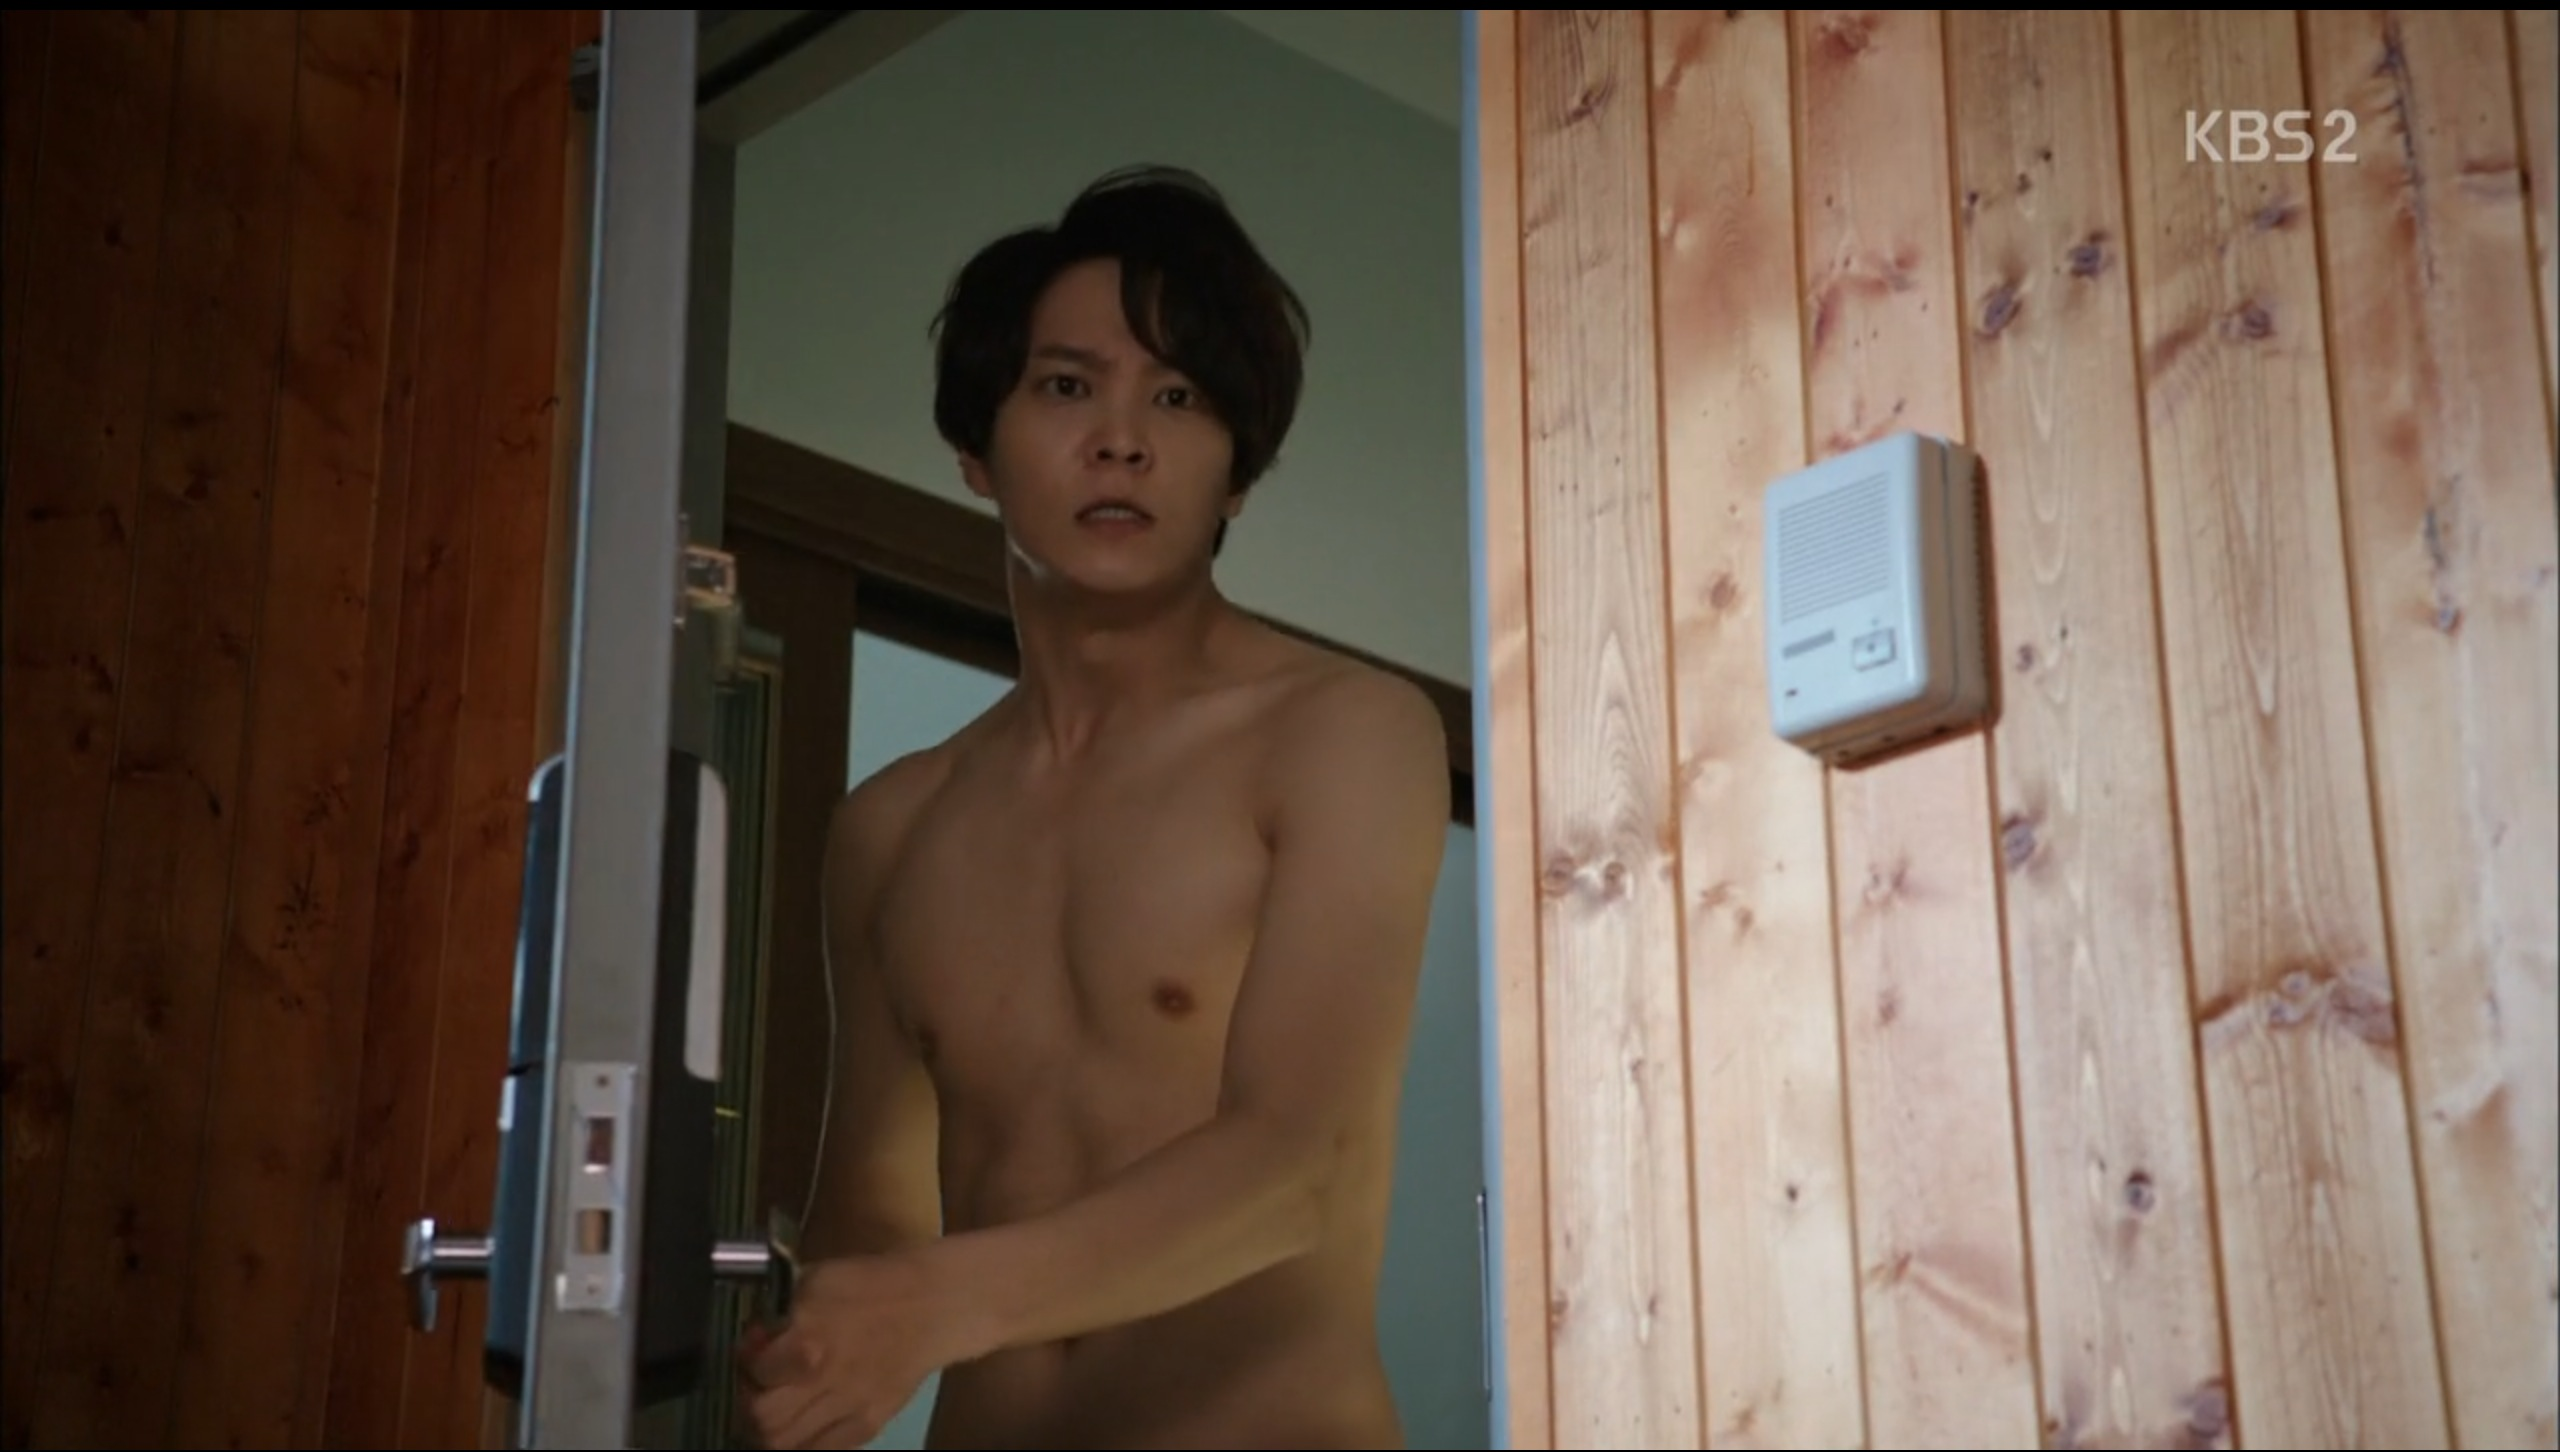 Sorry, that You are not alone nude scenes apologise, but